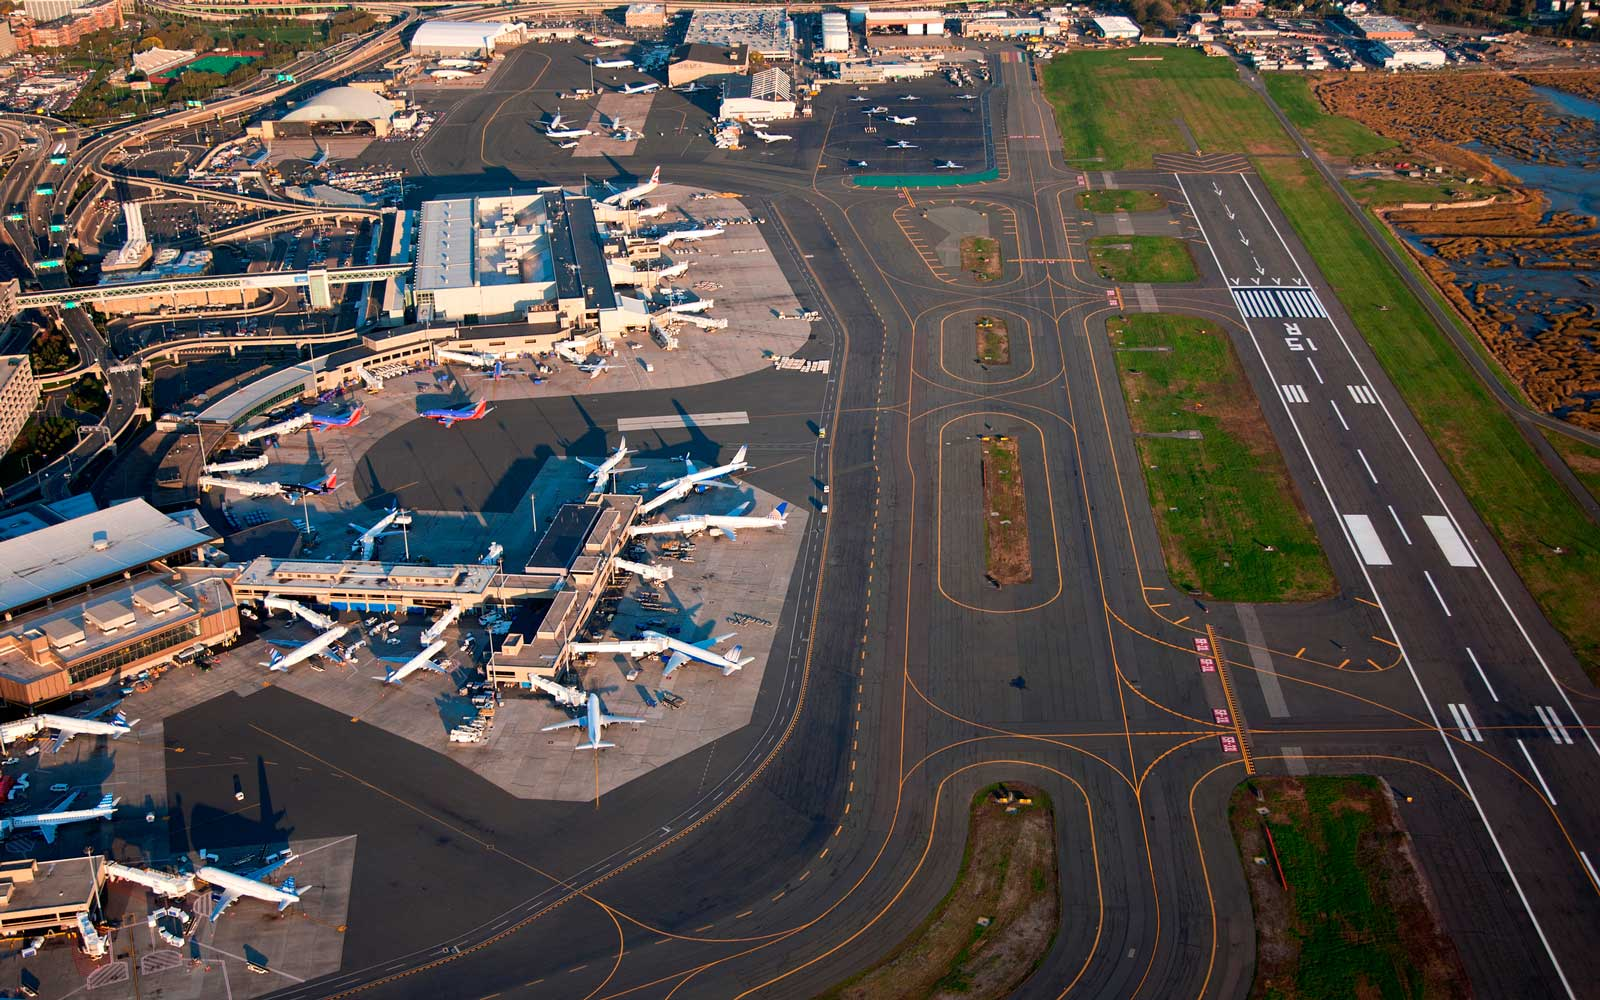 AERIALS VIEW of Logan International Airport, Boston, MA